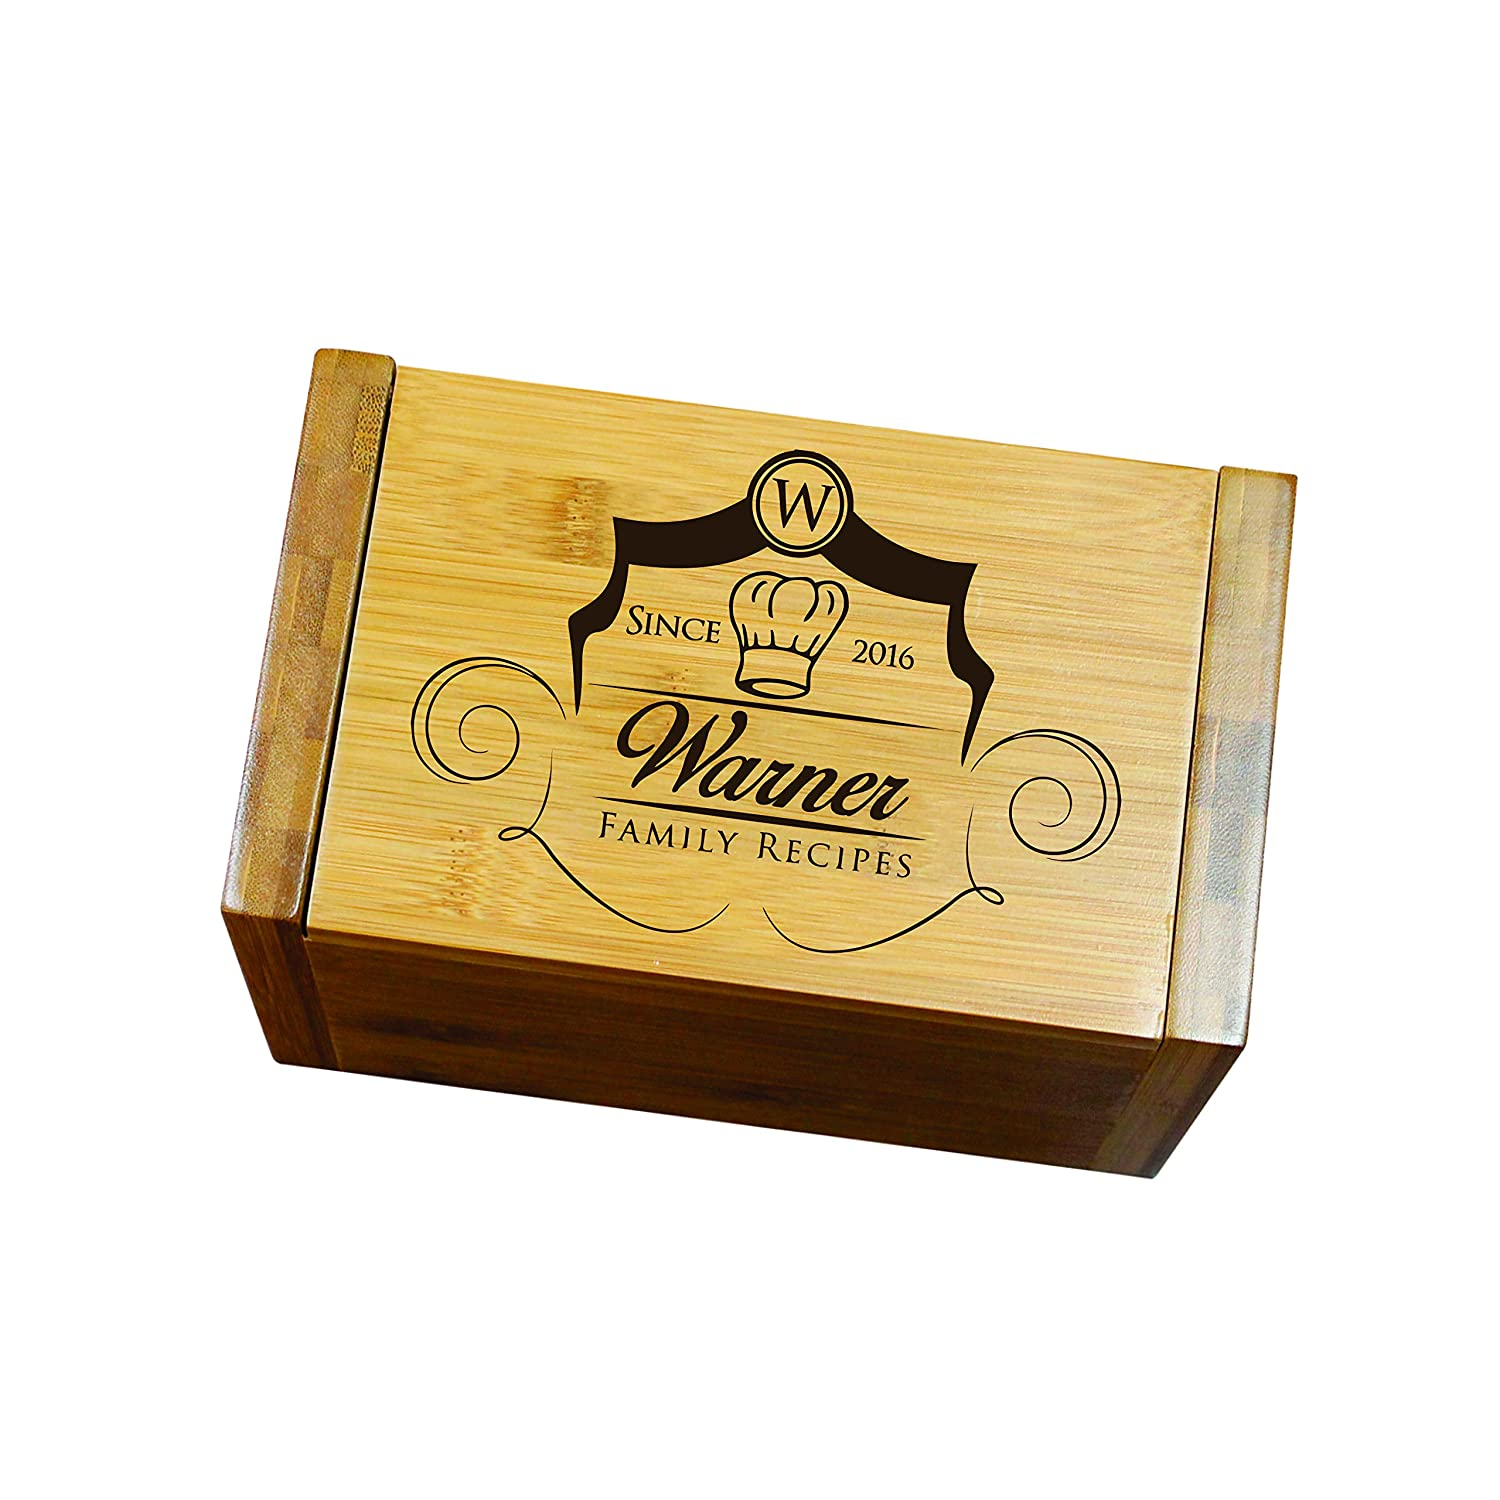 Personalized Recipe Box For Her - Custom Wood Recipe Organizer With Dividers - Kitchen Gift For Mom and Grandma